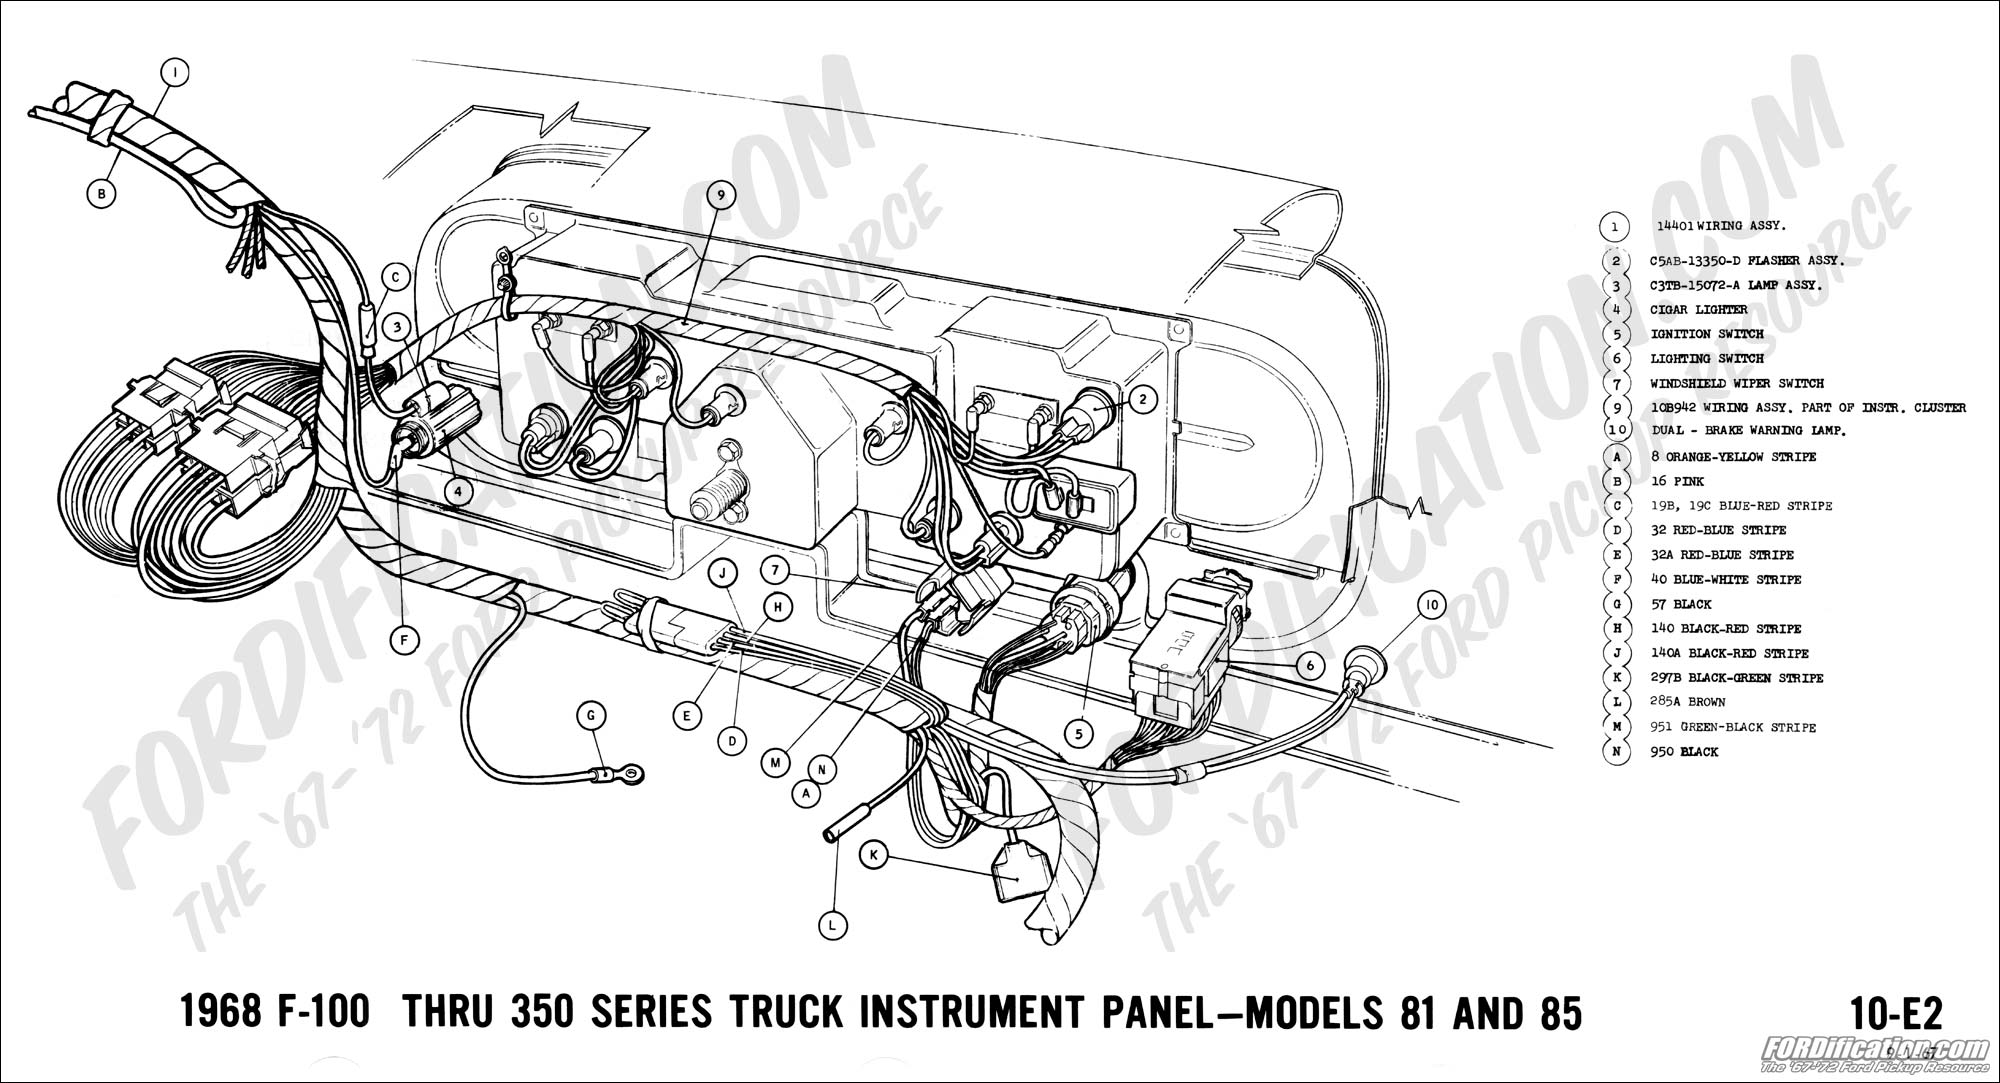 68 04 ford truck technical drawings and schematics section h wiring 1965 ford f100 dash wiring diagram at gsmx.co